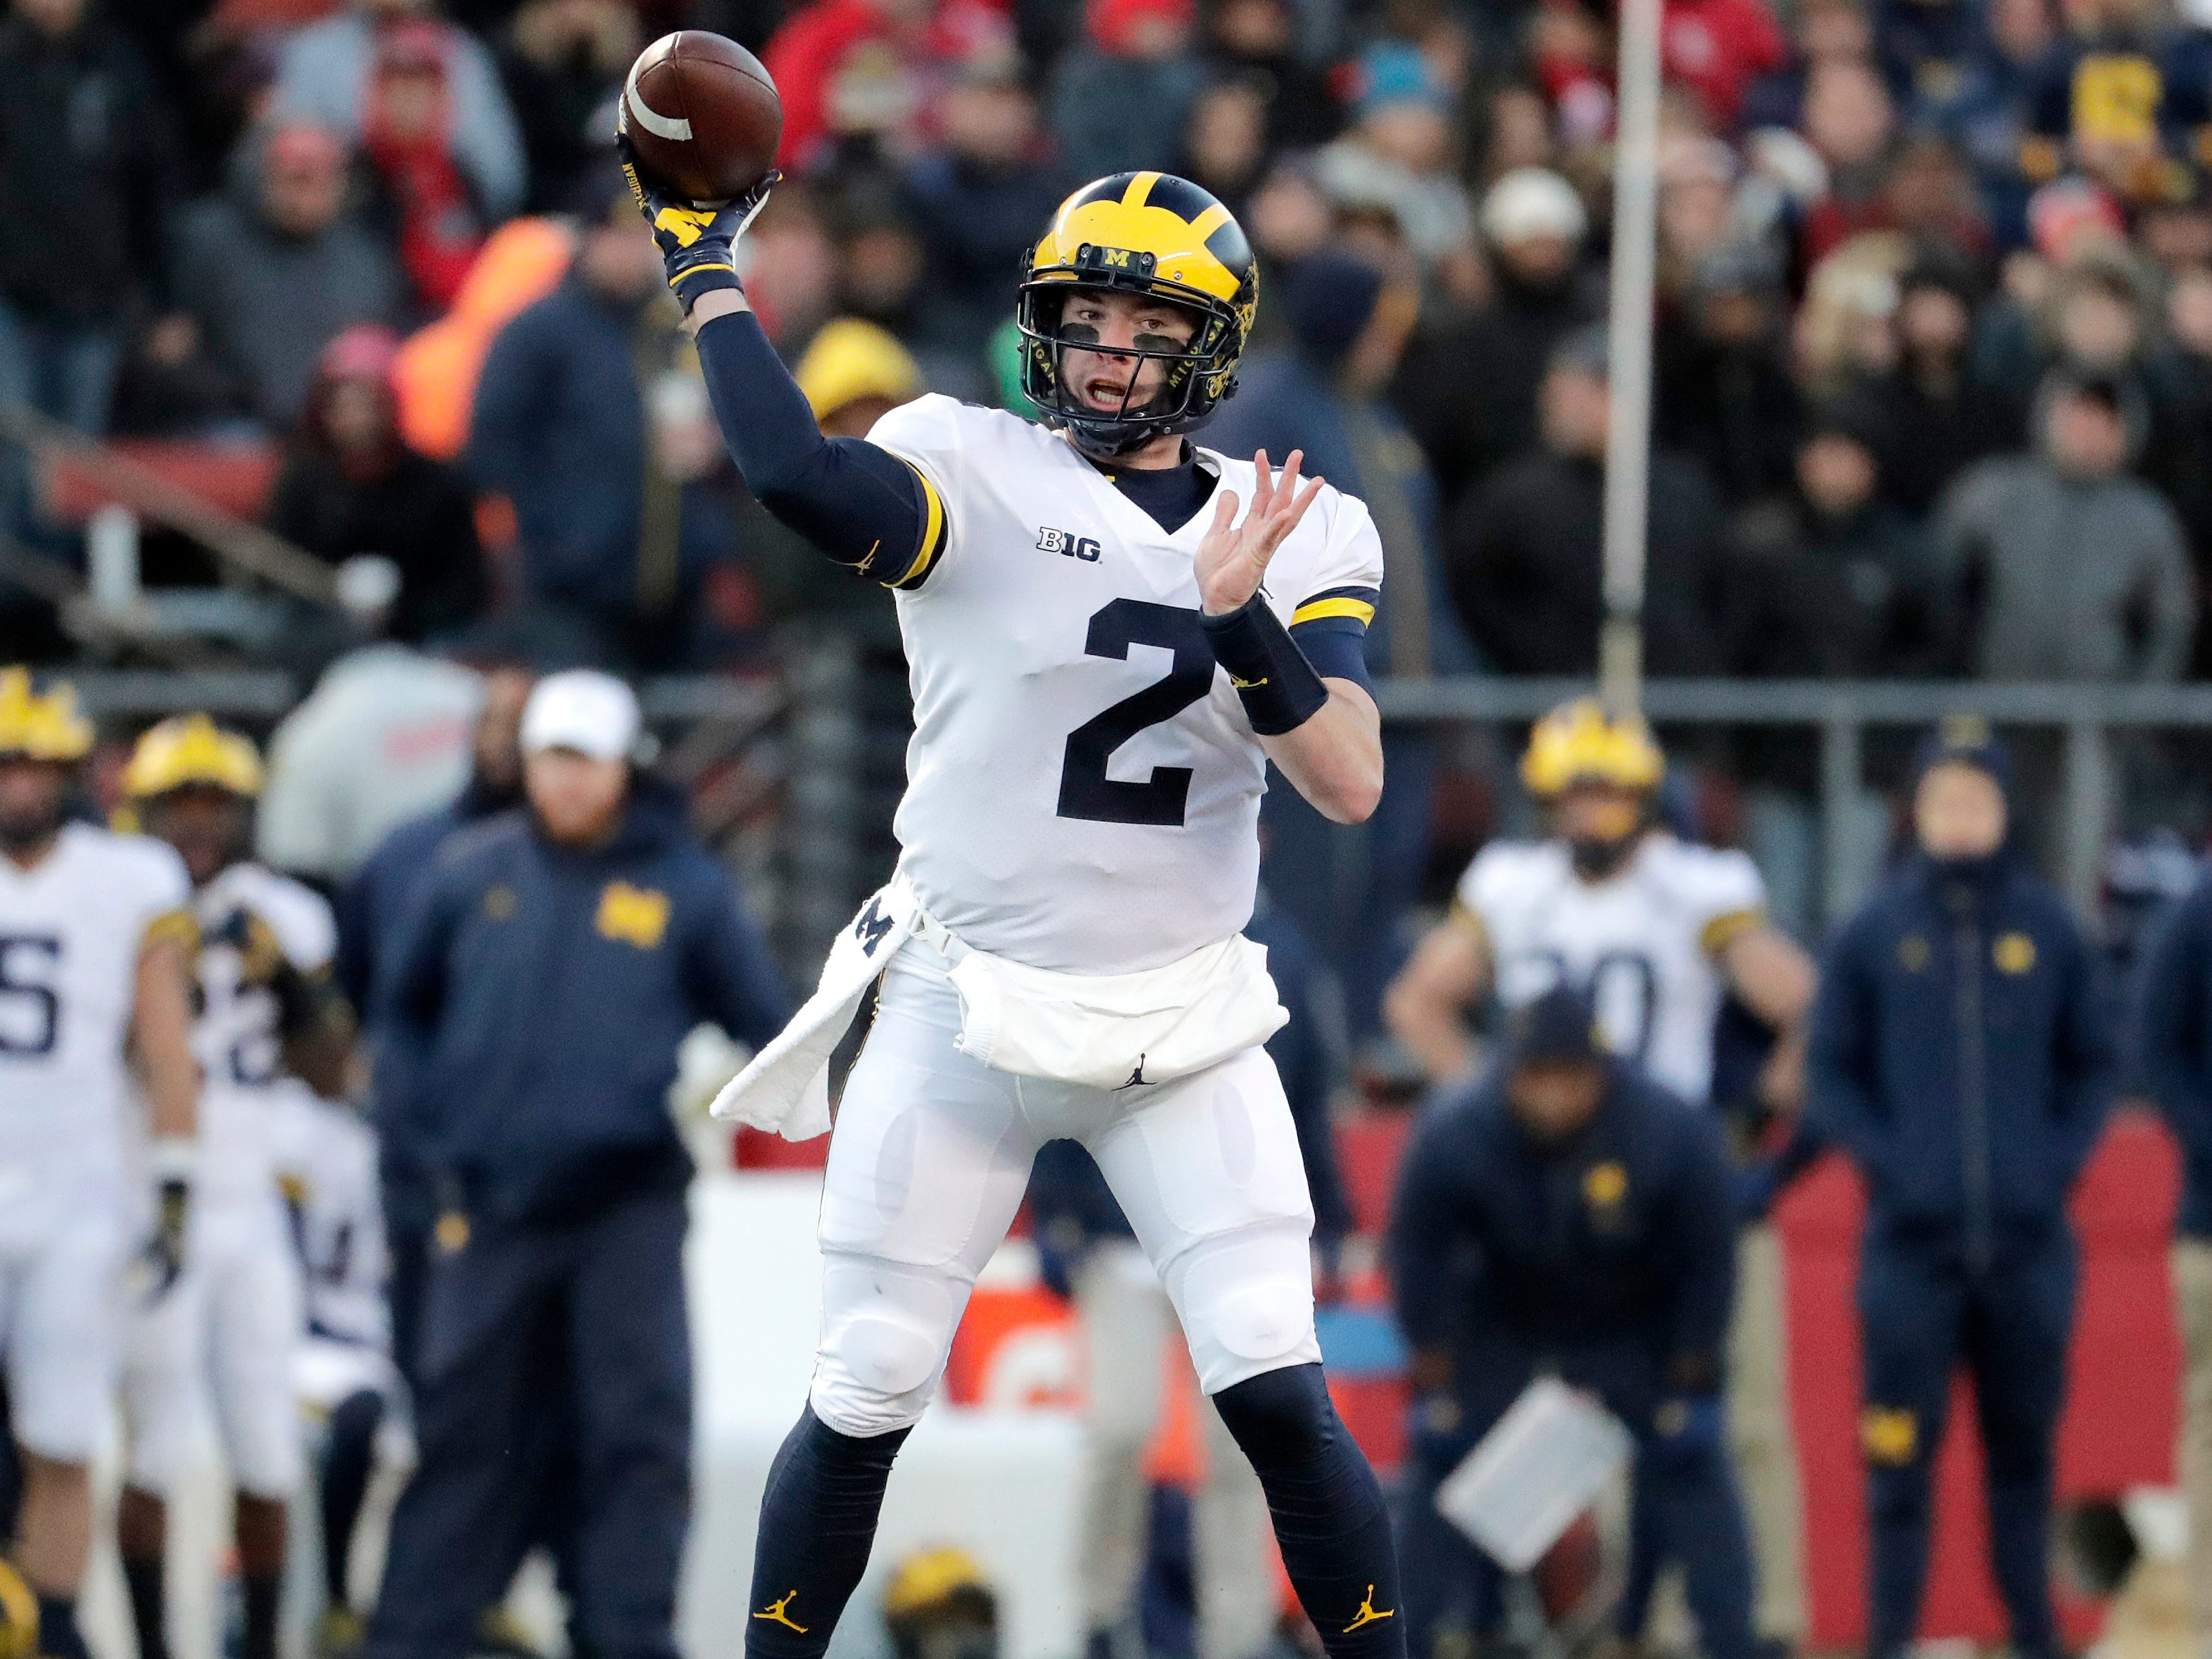 Michigan quarterback Shea Patterson looks to pass.